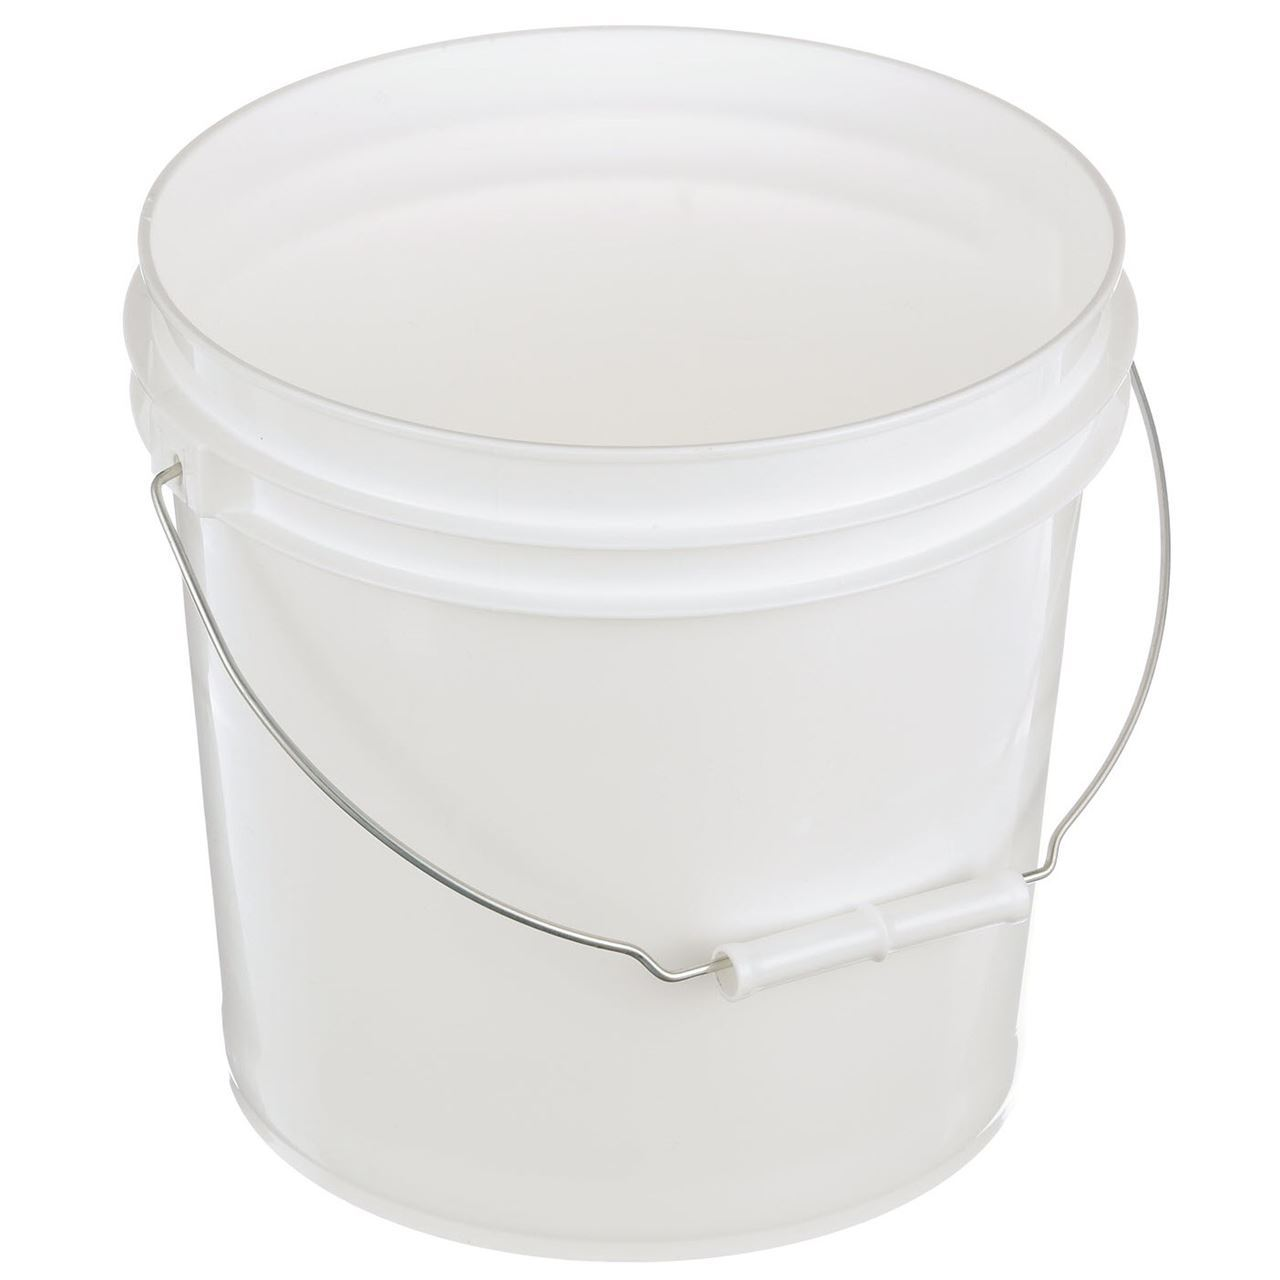 2 Gallon White Hdpe Plastic Pail With Metal Swing Handle Packaging